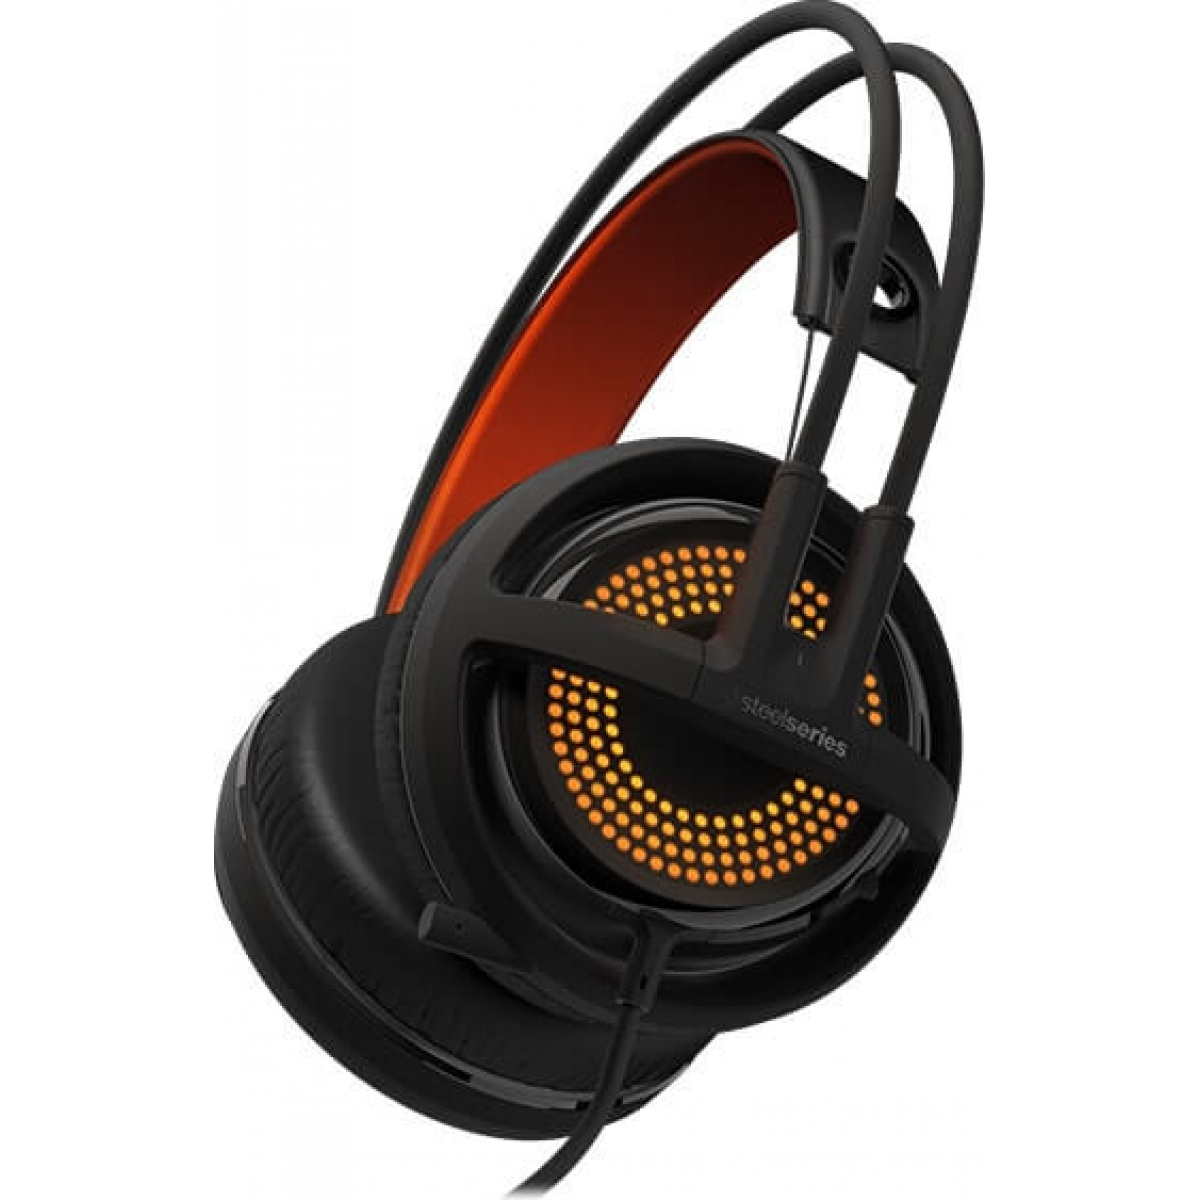 Headset Gamer Steelseries Siberia 350 RGB Dolby 7.1 Preto 51202